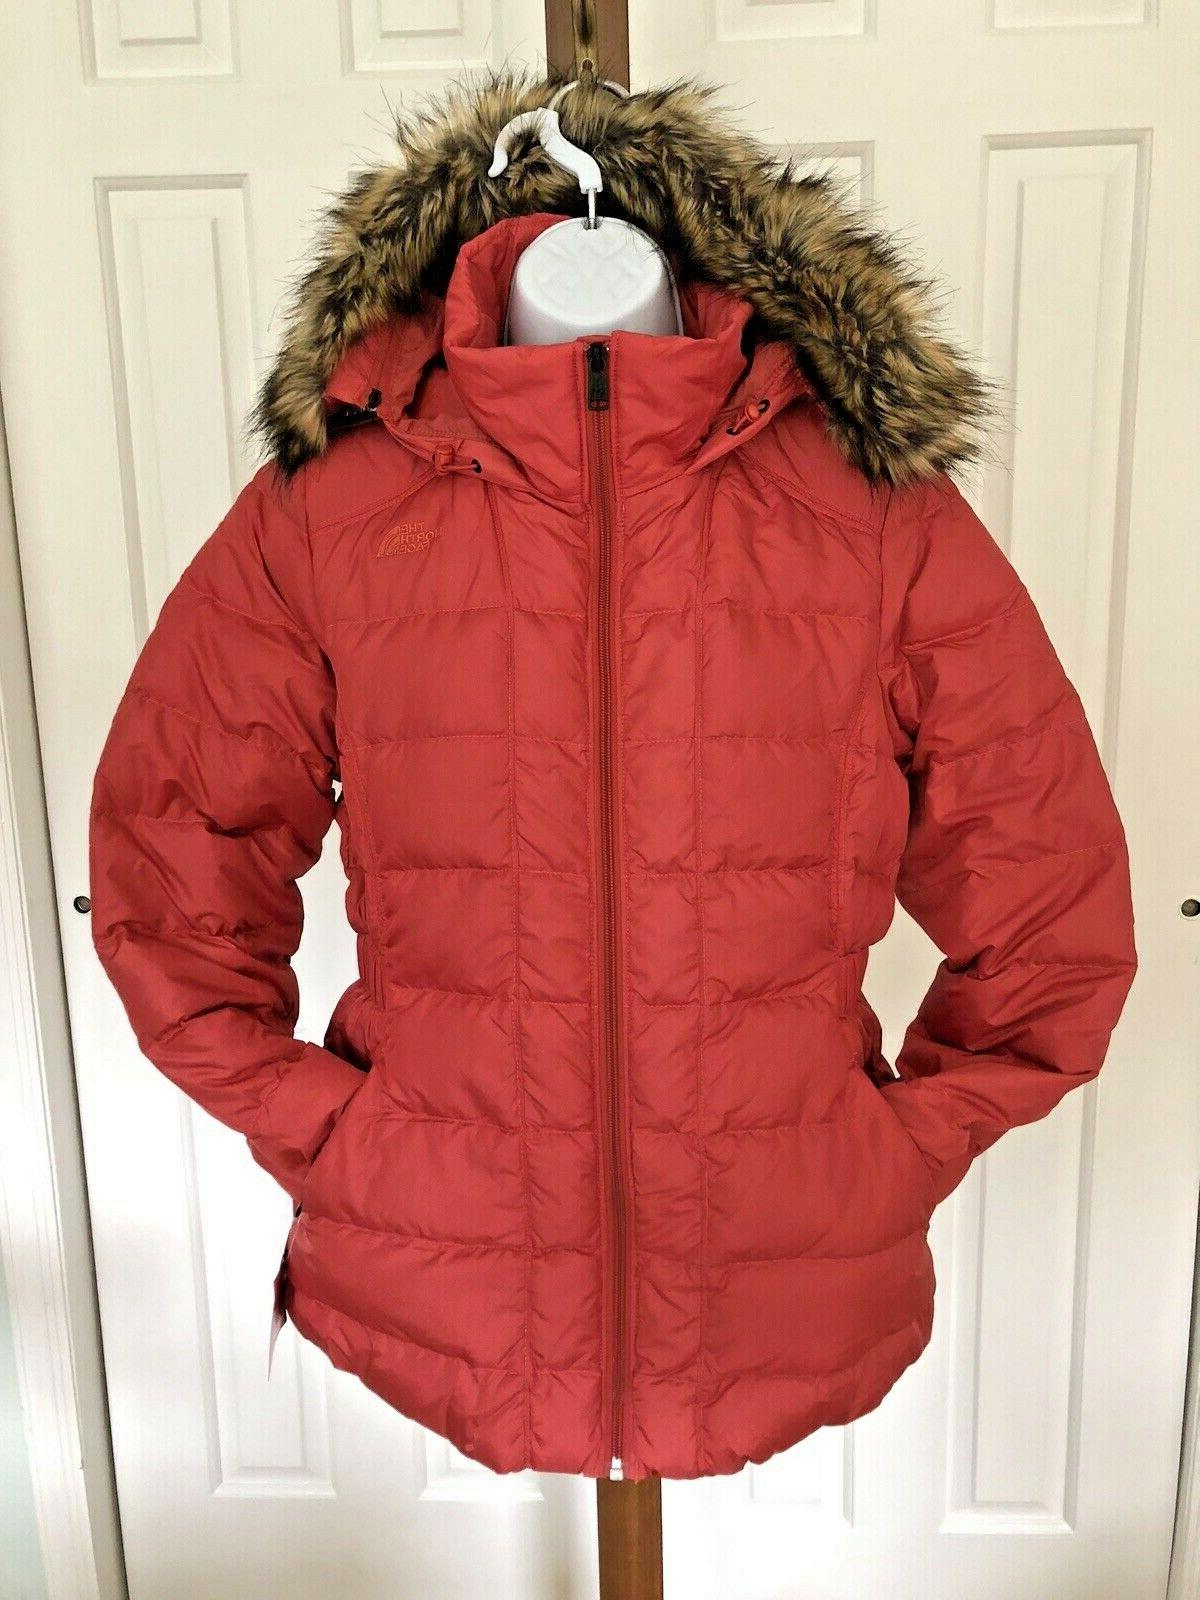 nwt womens north face gotham hooded down